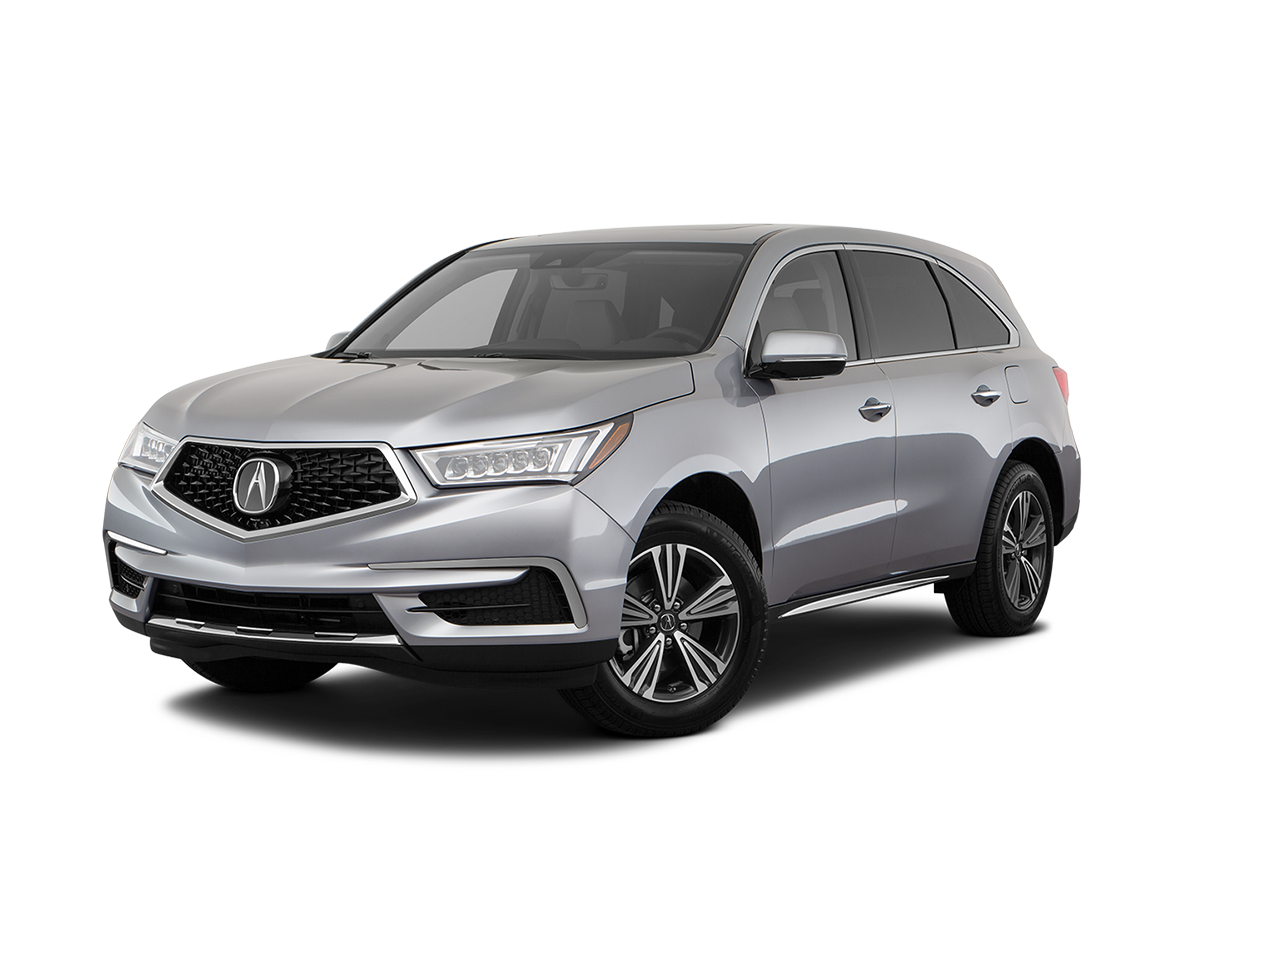 2019 MDX Advance and Entertainment Packages